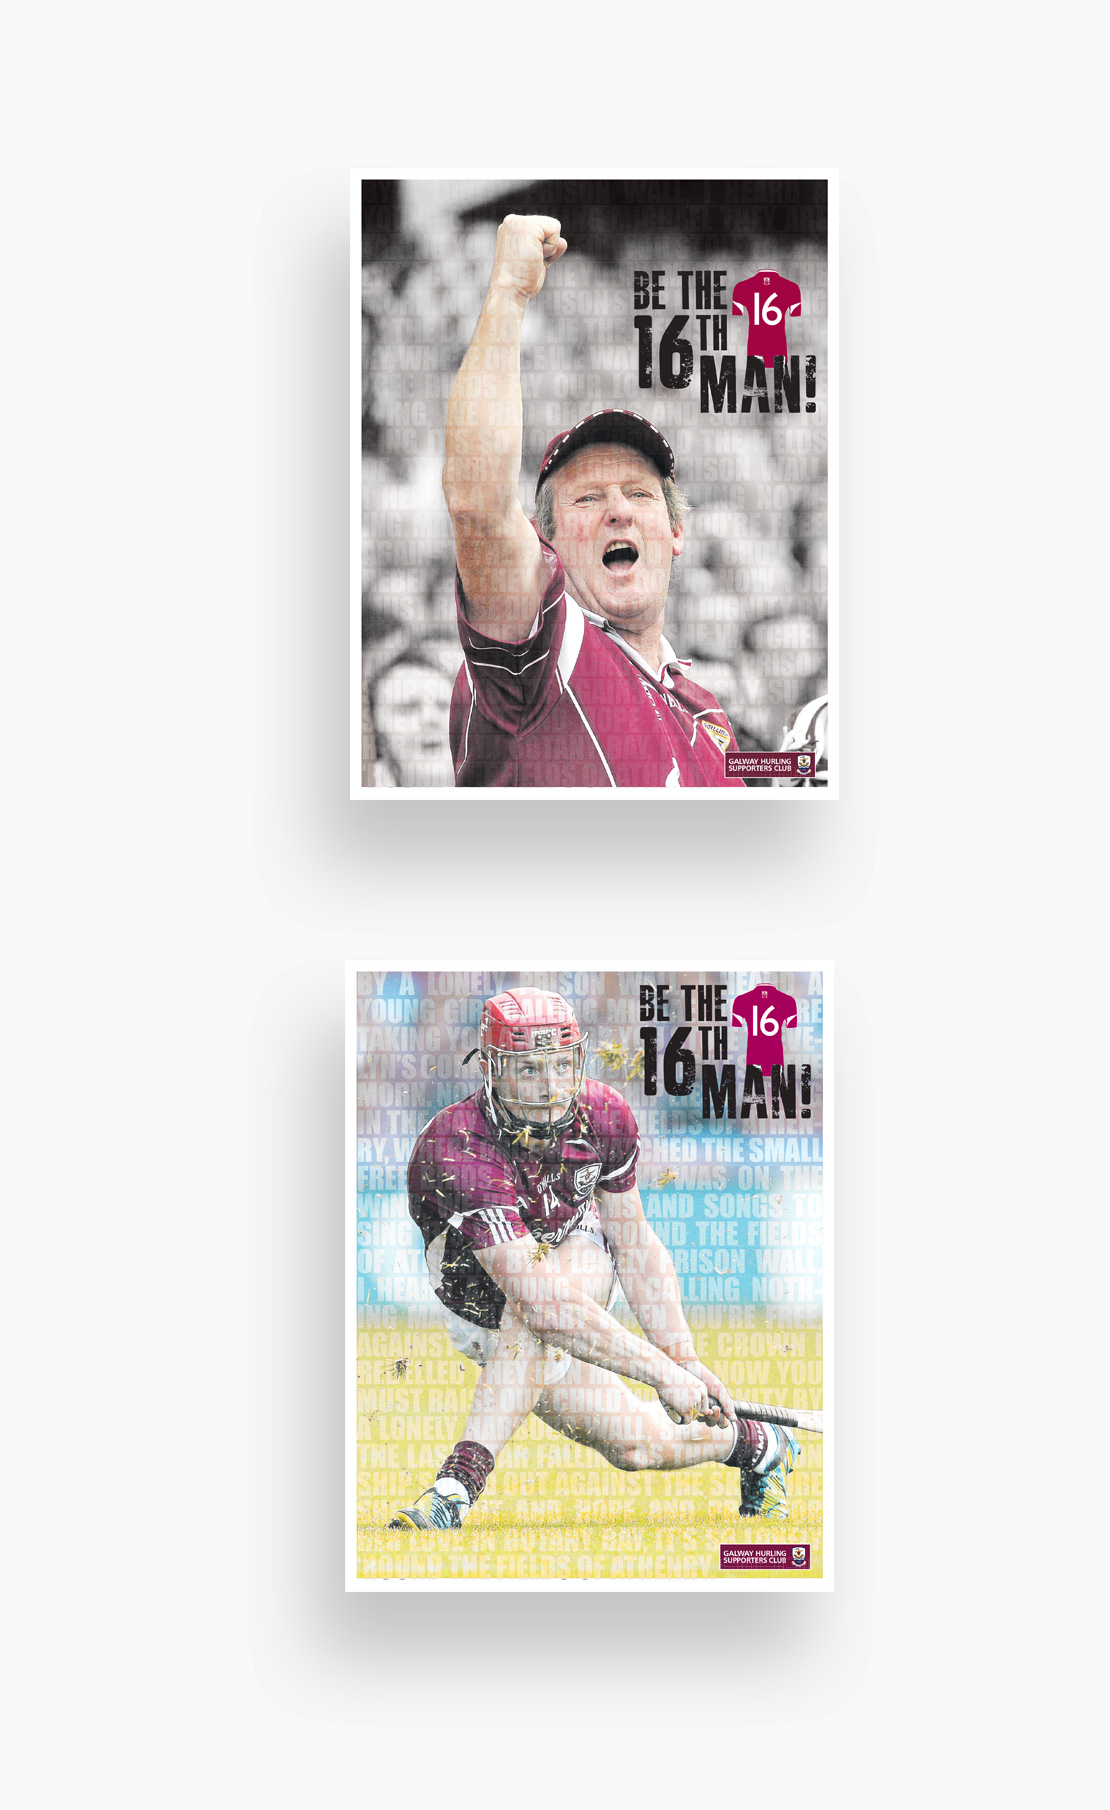 Galway Independent Galway Hurlers All-Ireland '16th Man' campaign advertisements